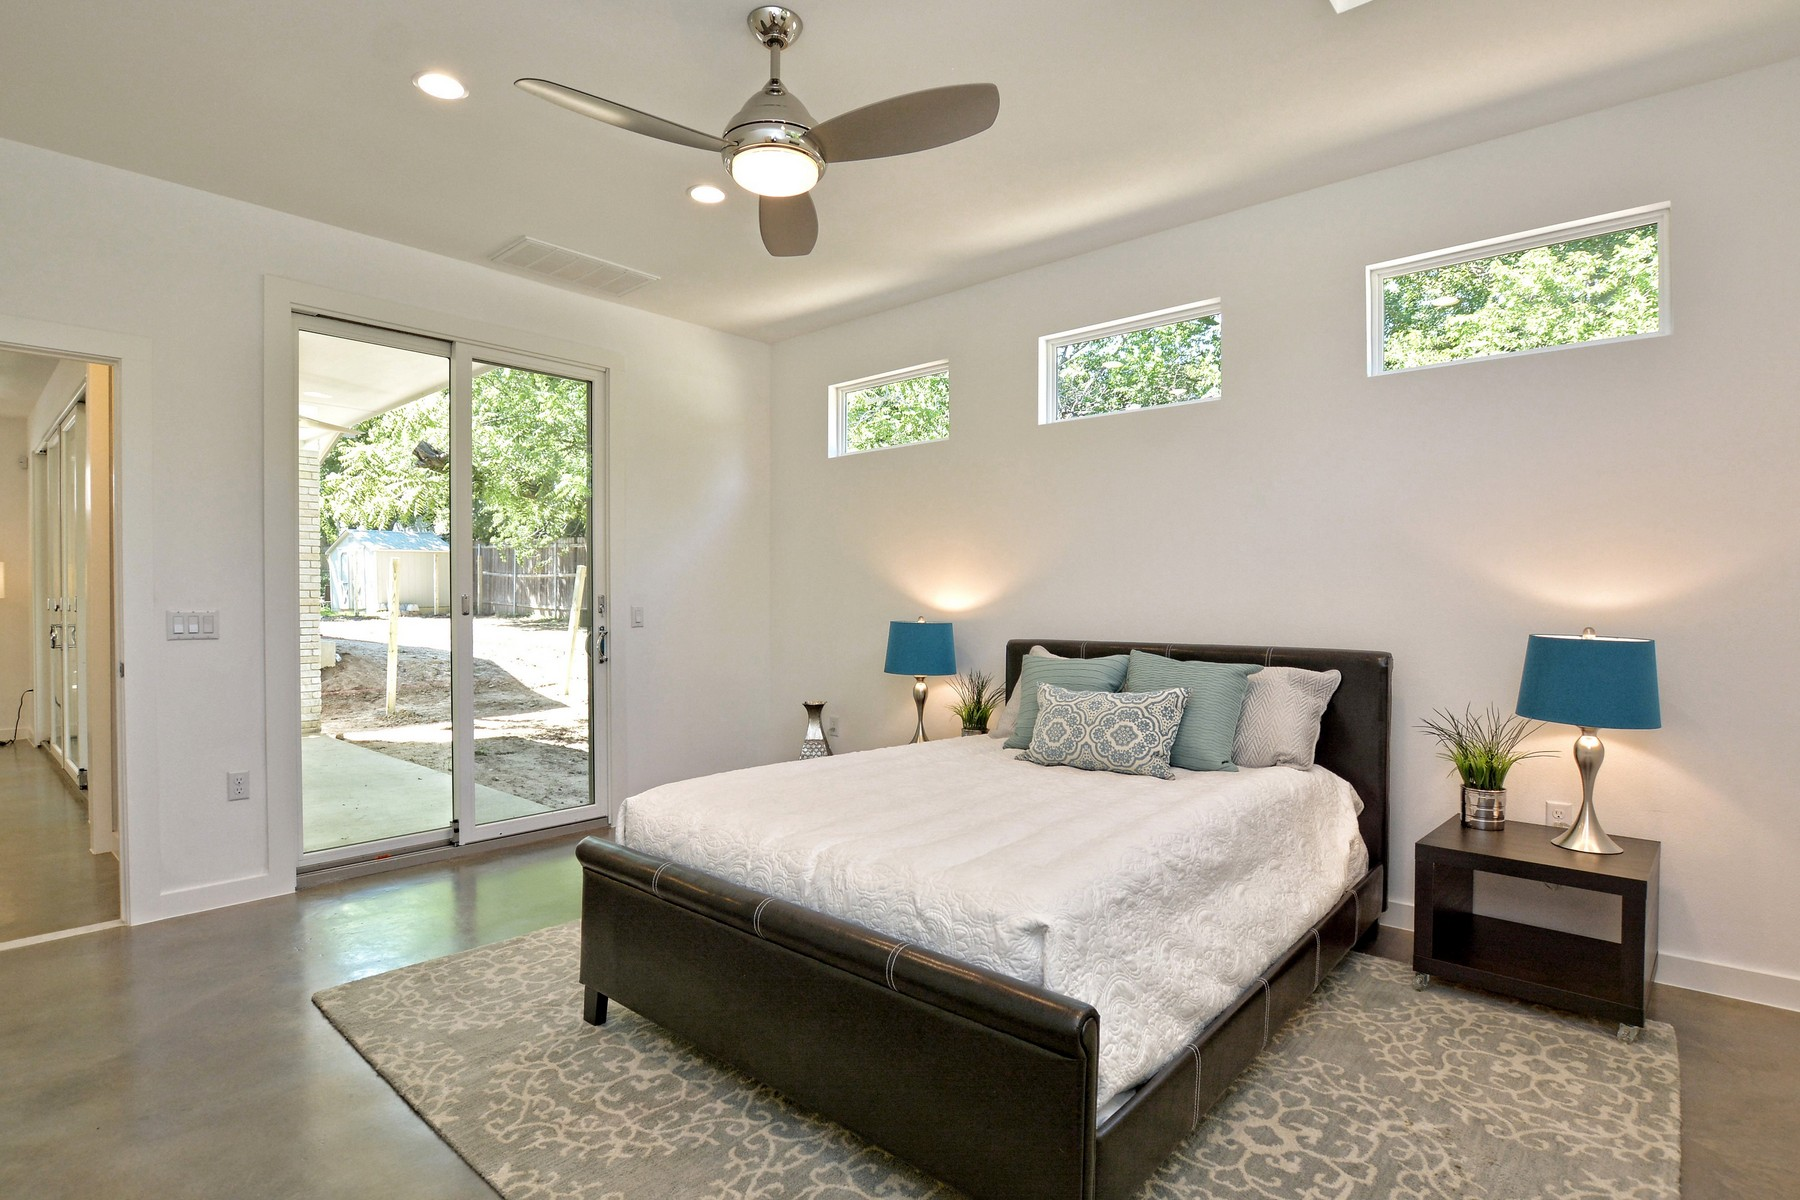 Additional photo for property listing at New Construction in the Heart of Zilker 1804 Frazier Ave Austin, Texas 78704 Estados Unidos